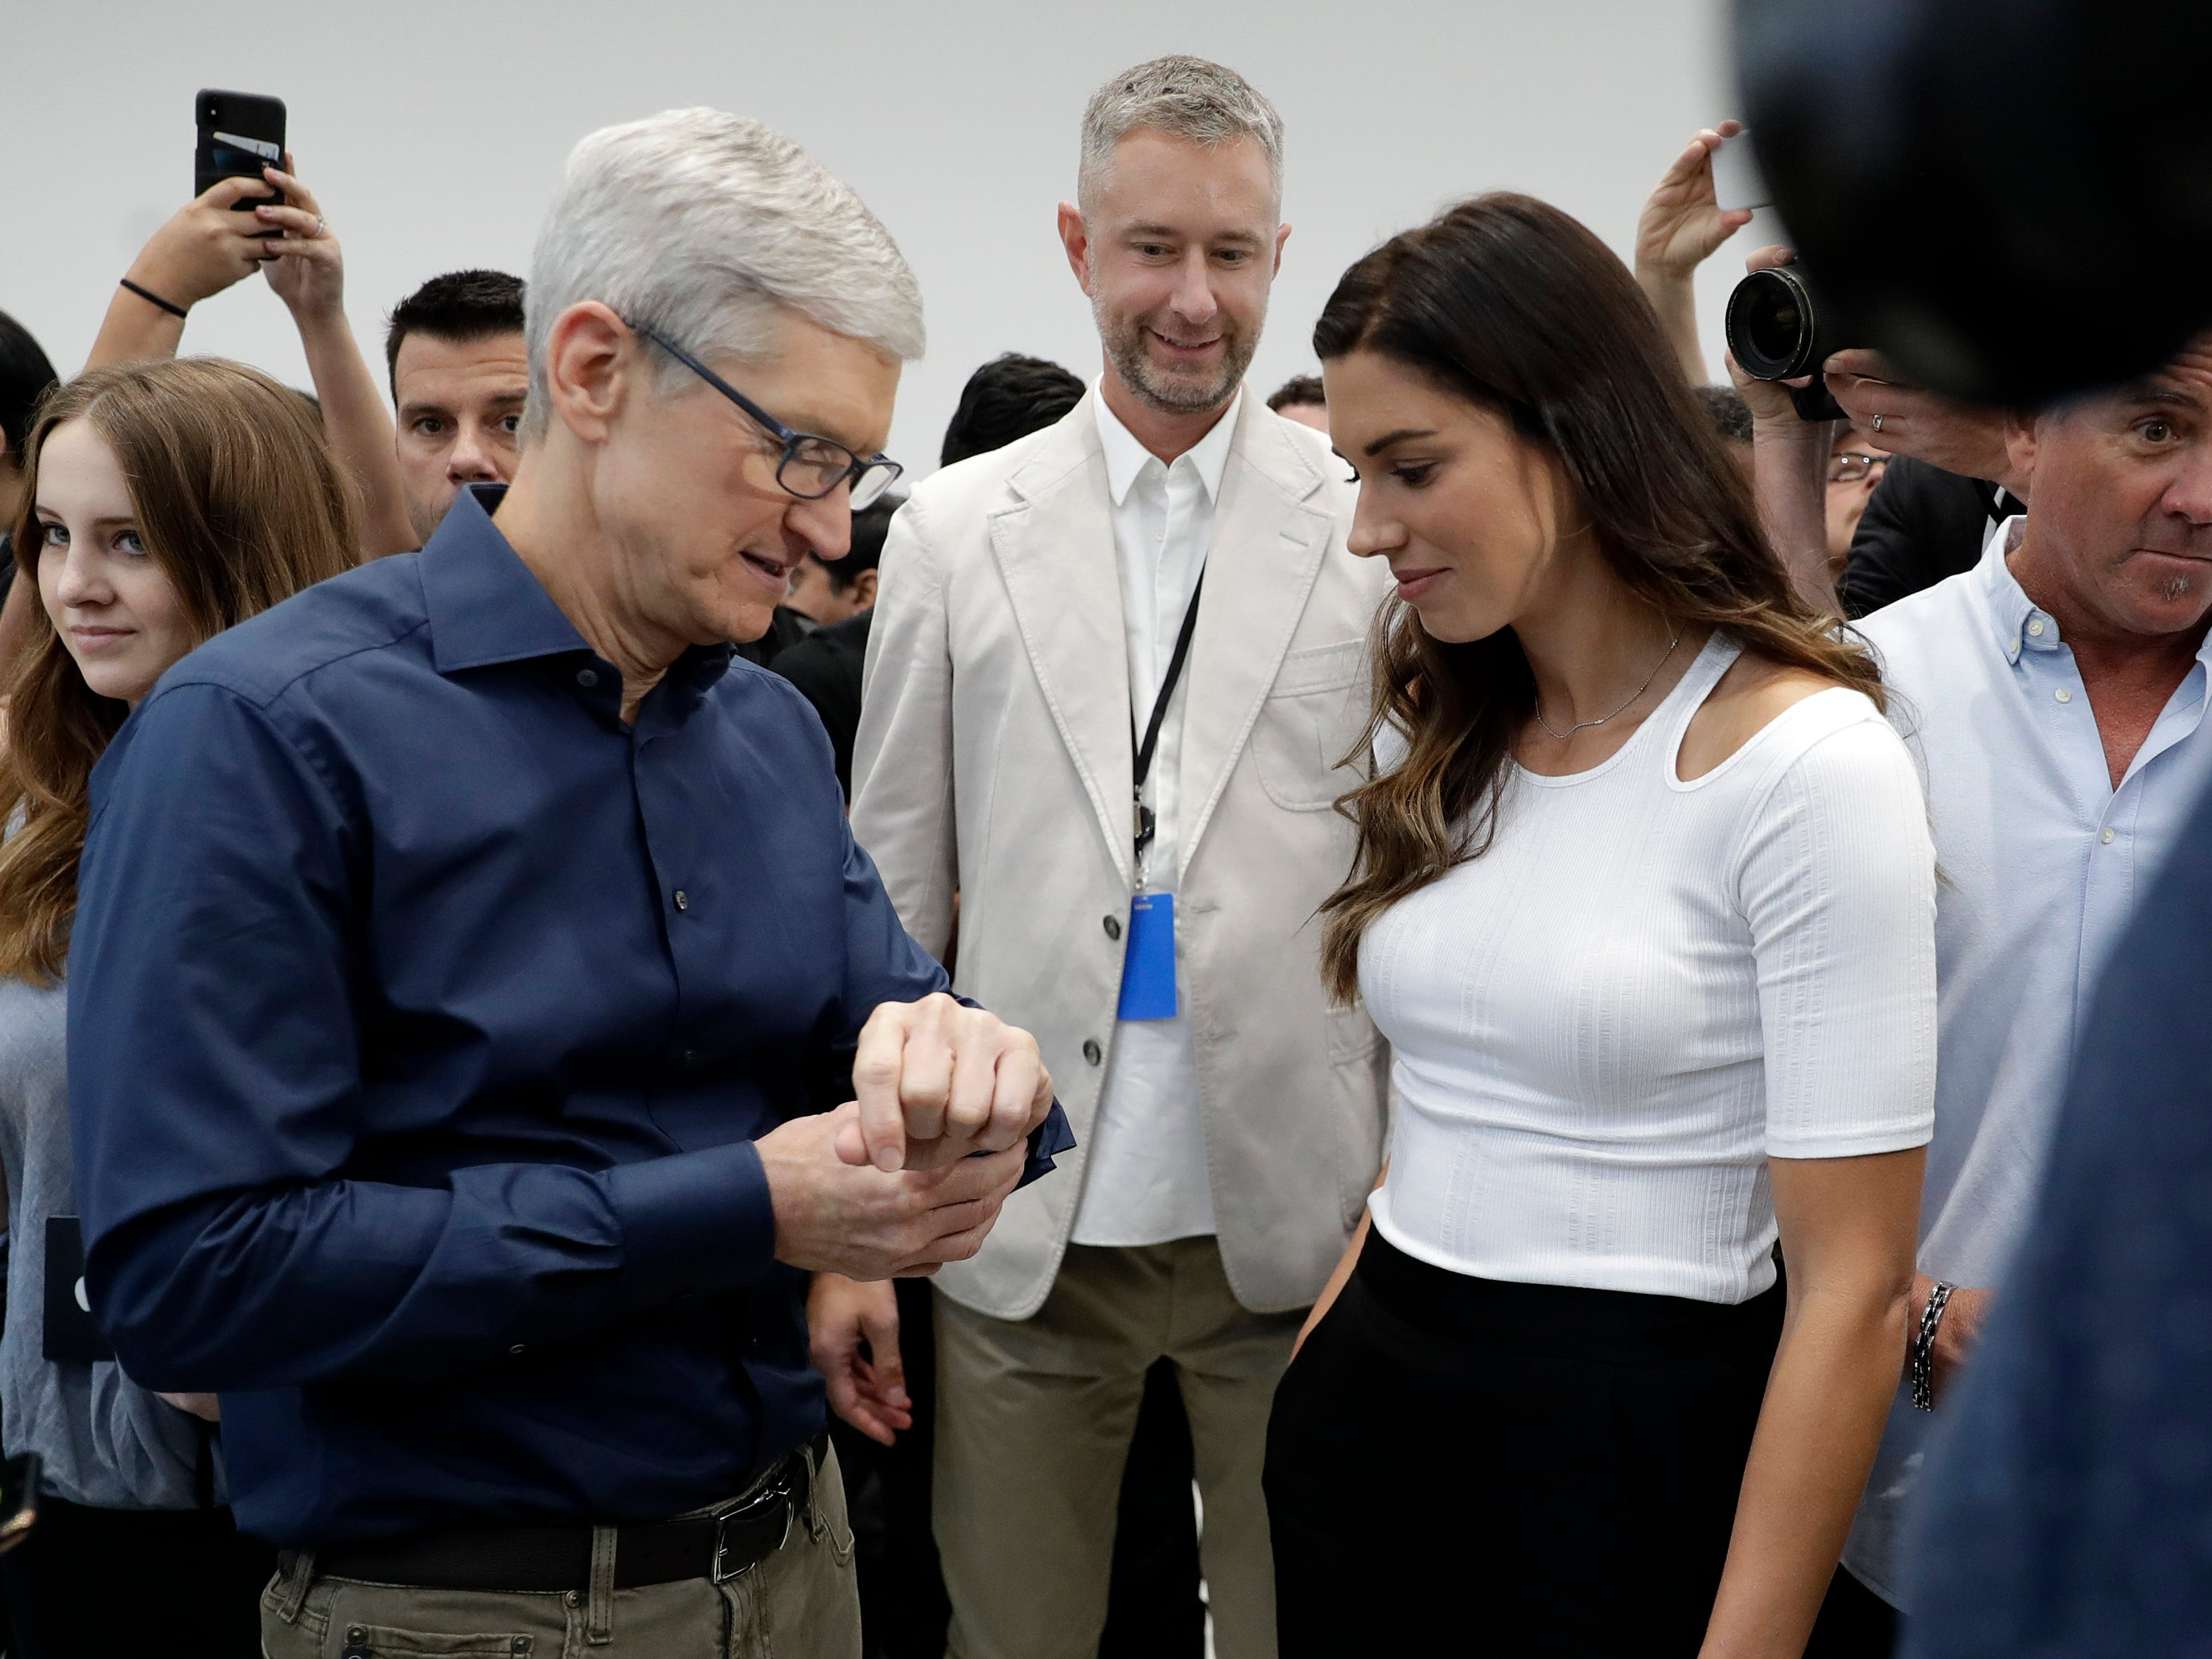 Apple CEO Tim Cook, left and soccer player Alex Morgan discuss the new Apple Watch 4 at the Steve Jobs Theater during an event to announce new products Wednesday, Sept. 12, 2018, in Cupertino, Calif.